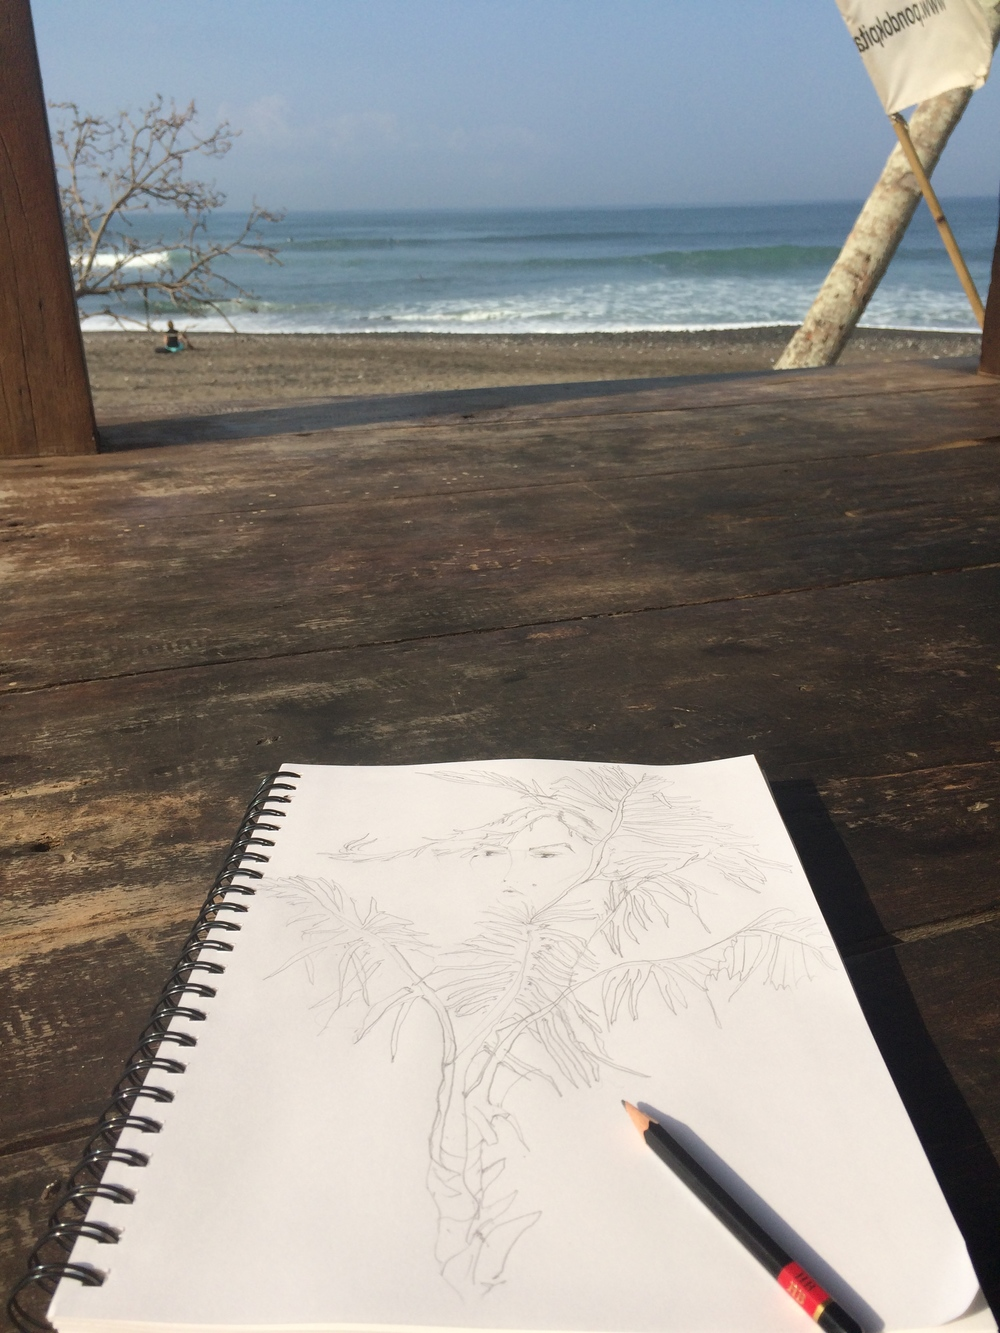 Day 1: Palm trees and surf gazing